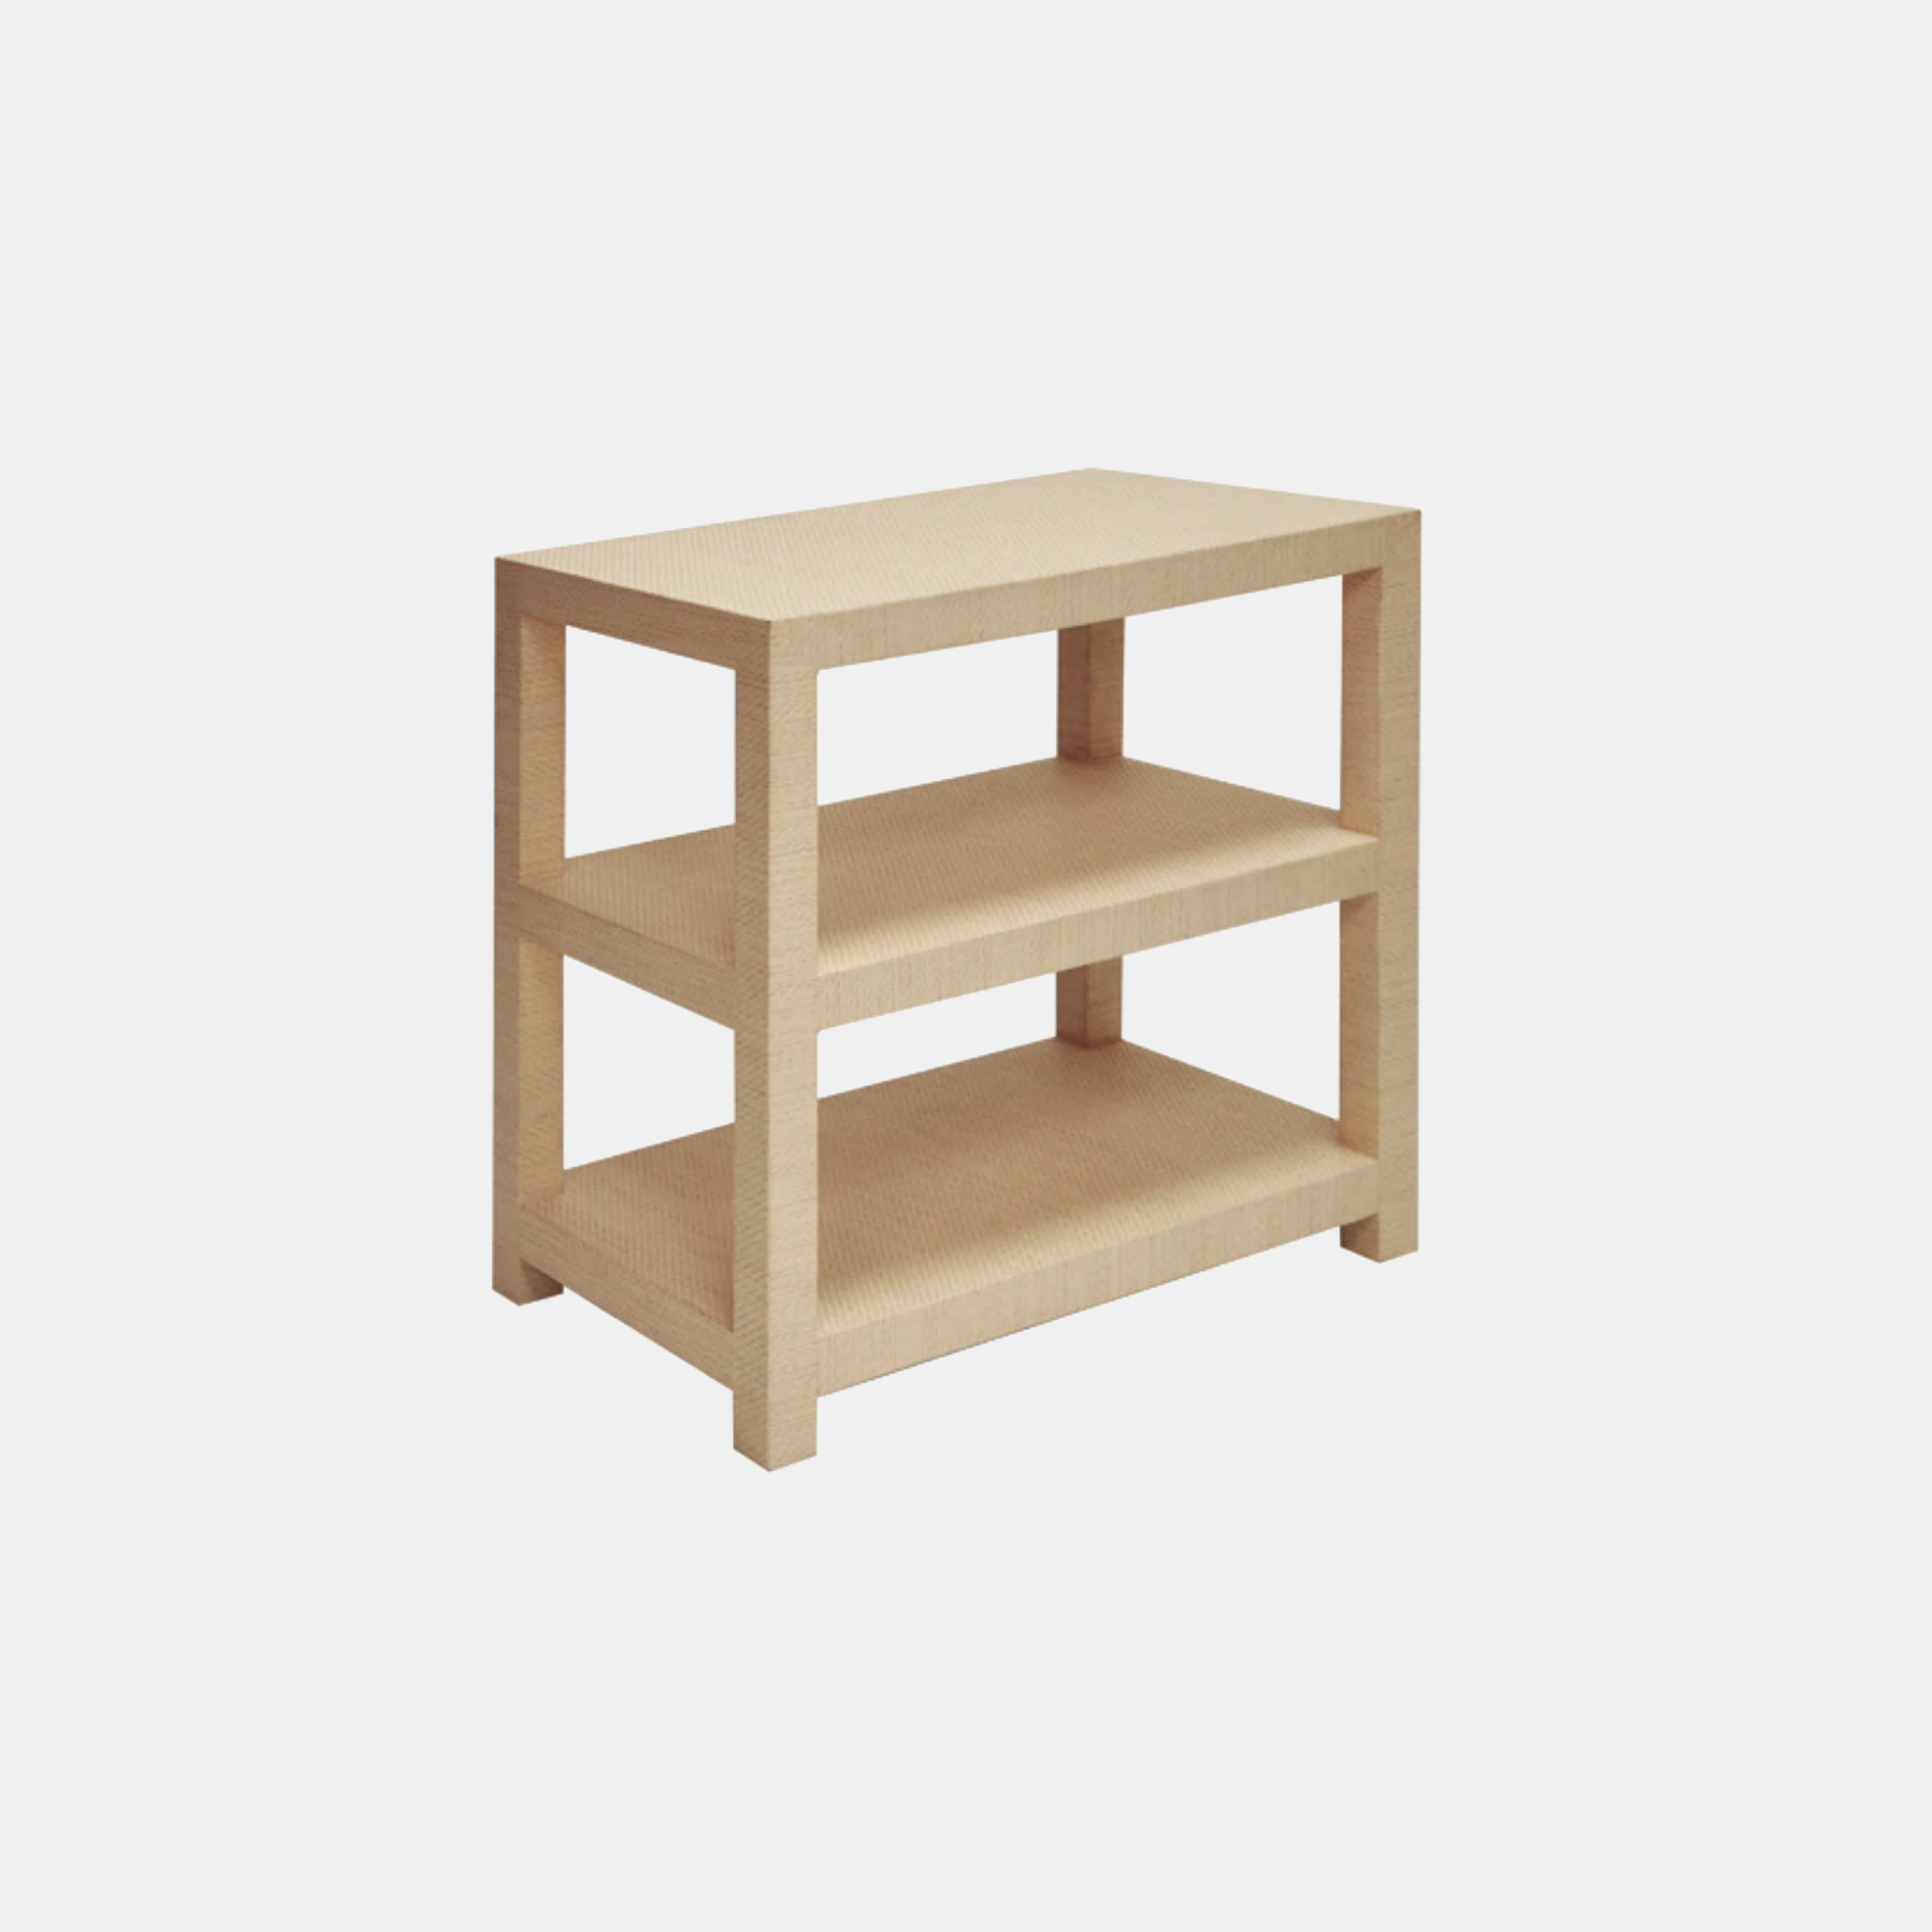 """Huxley Side Table  30""""l x 18""""d x 29.25"""" h Available in natural grasscloth (shown) and gray grasscloth. SKU66092WAY"""